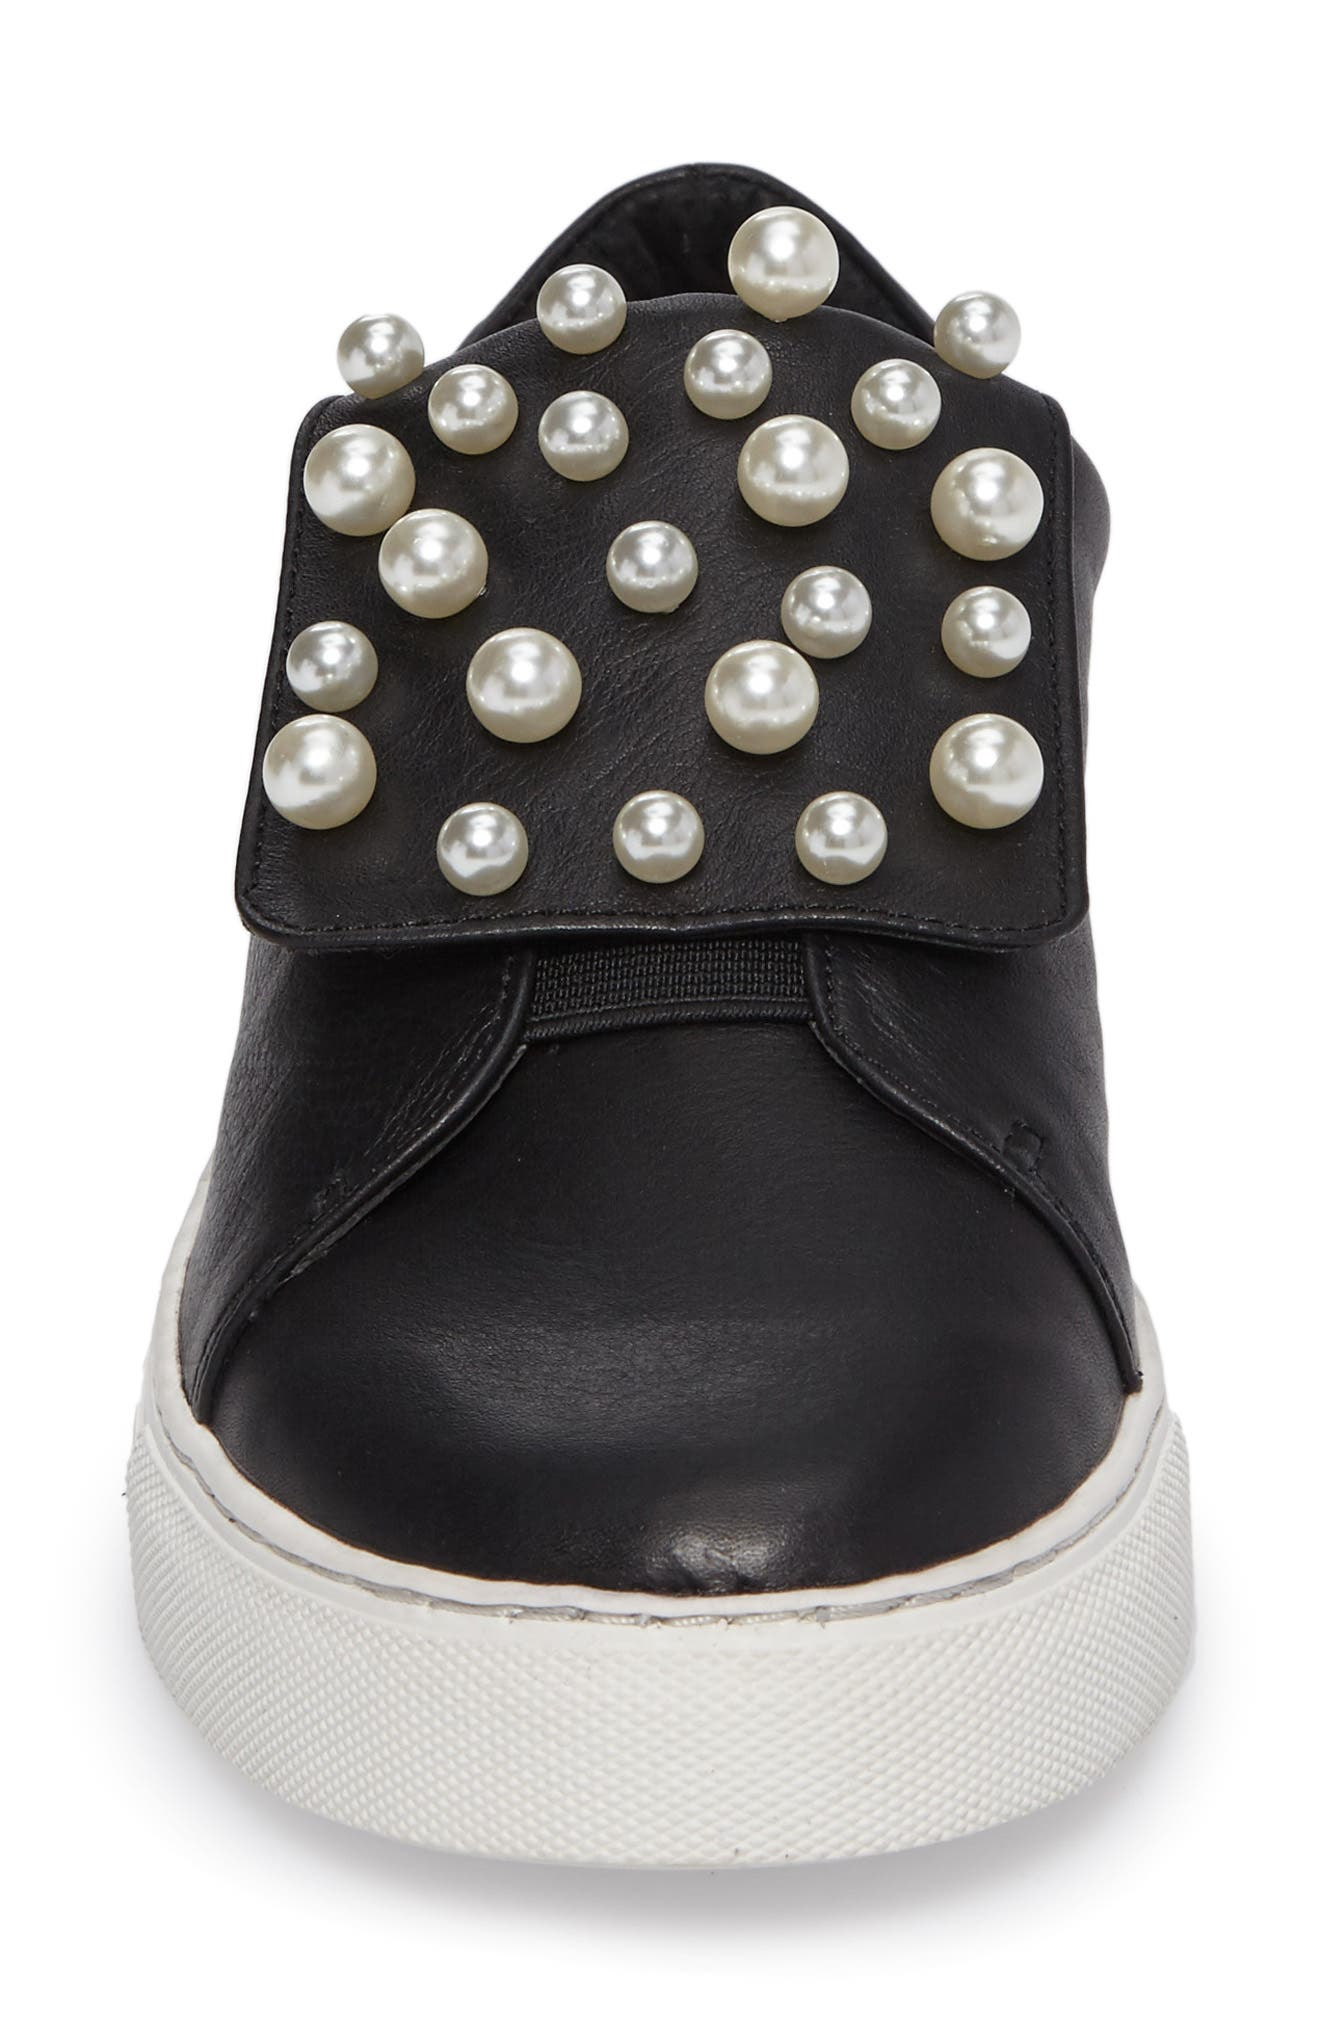 Hadi Imitation Pearl Embellished Platorm Sneaker,                             Alternate thumbnail 4, color,                             Black